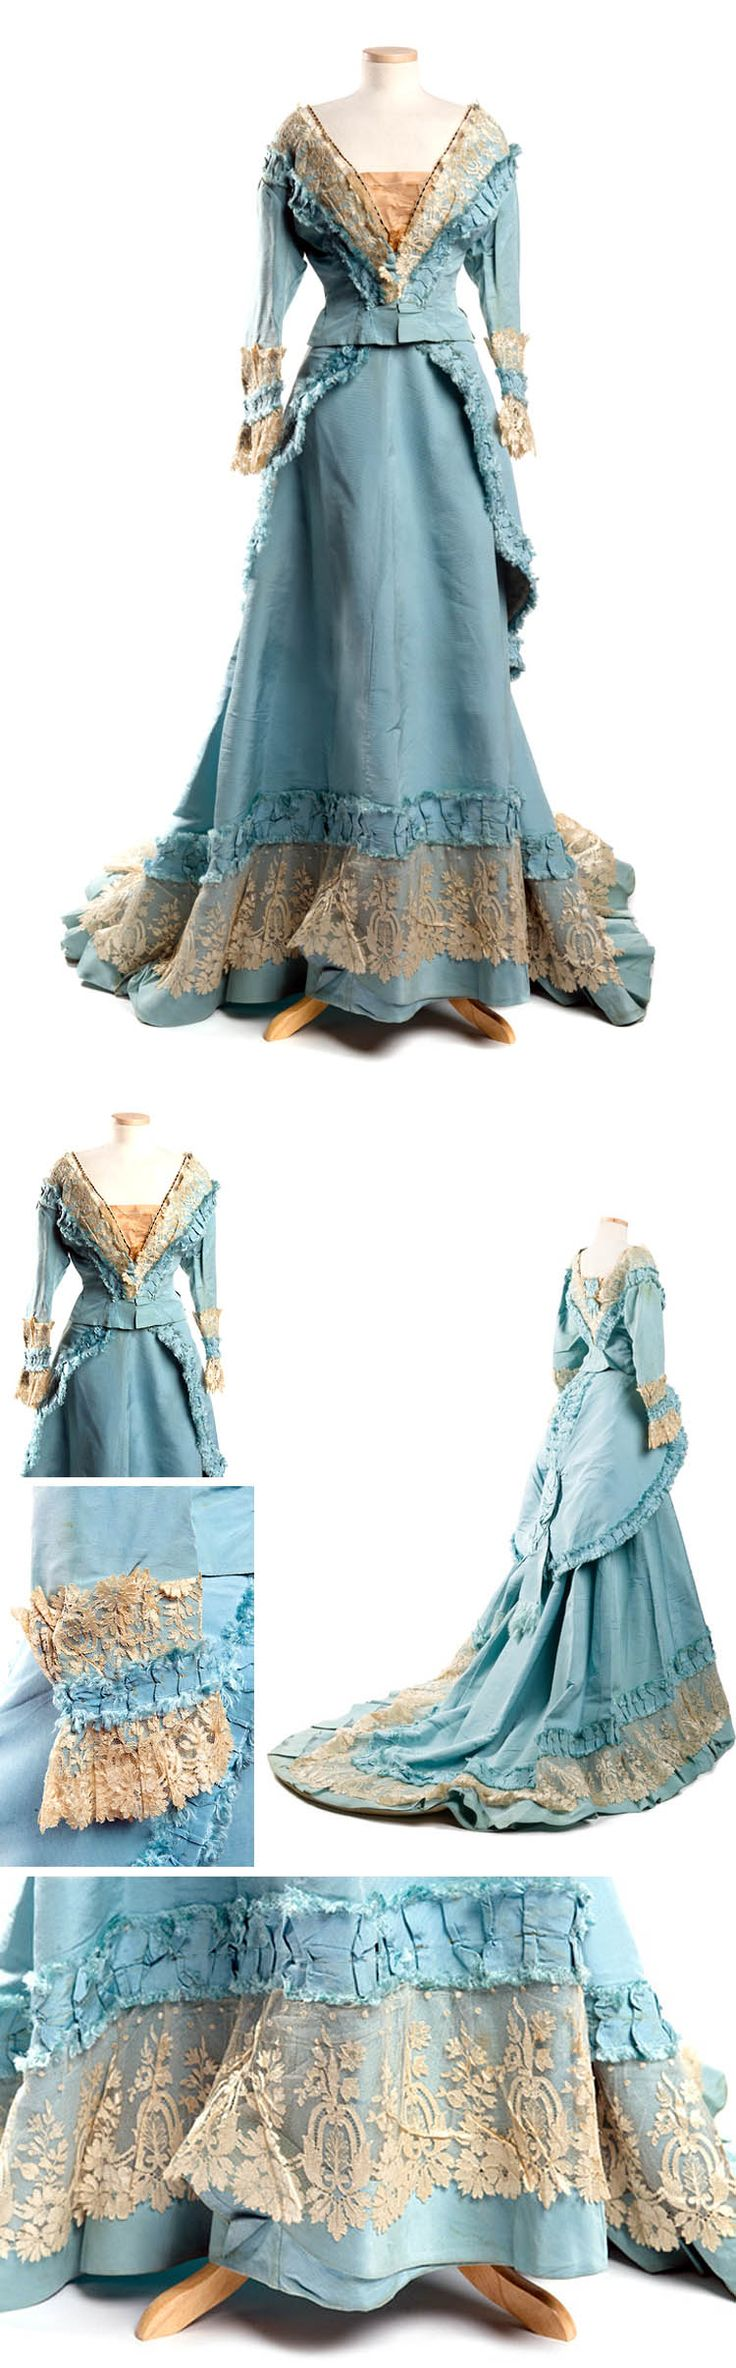 Evening or dinner dress, Mme. Gabrielle, Paris, ca. early 1870s. Mme. Gabrielle, while not as well-known now, was as respected in her day as Charles Worth and other top Parisian designers. Charleston Museum Tumblr